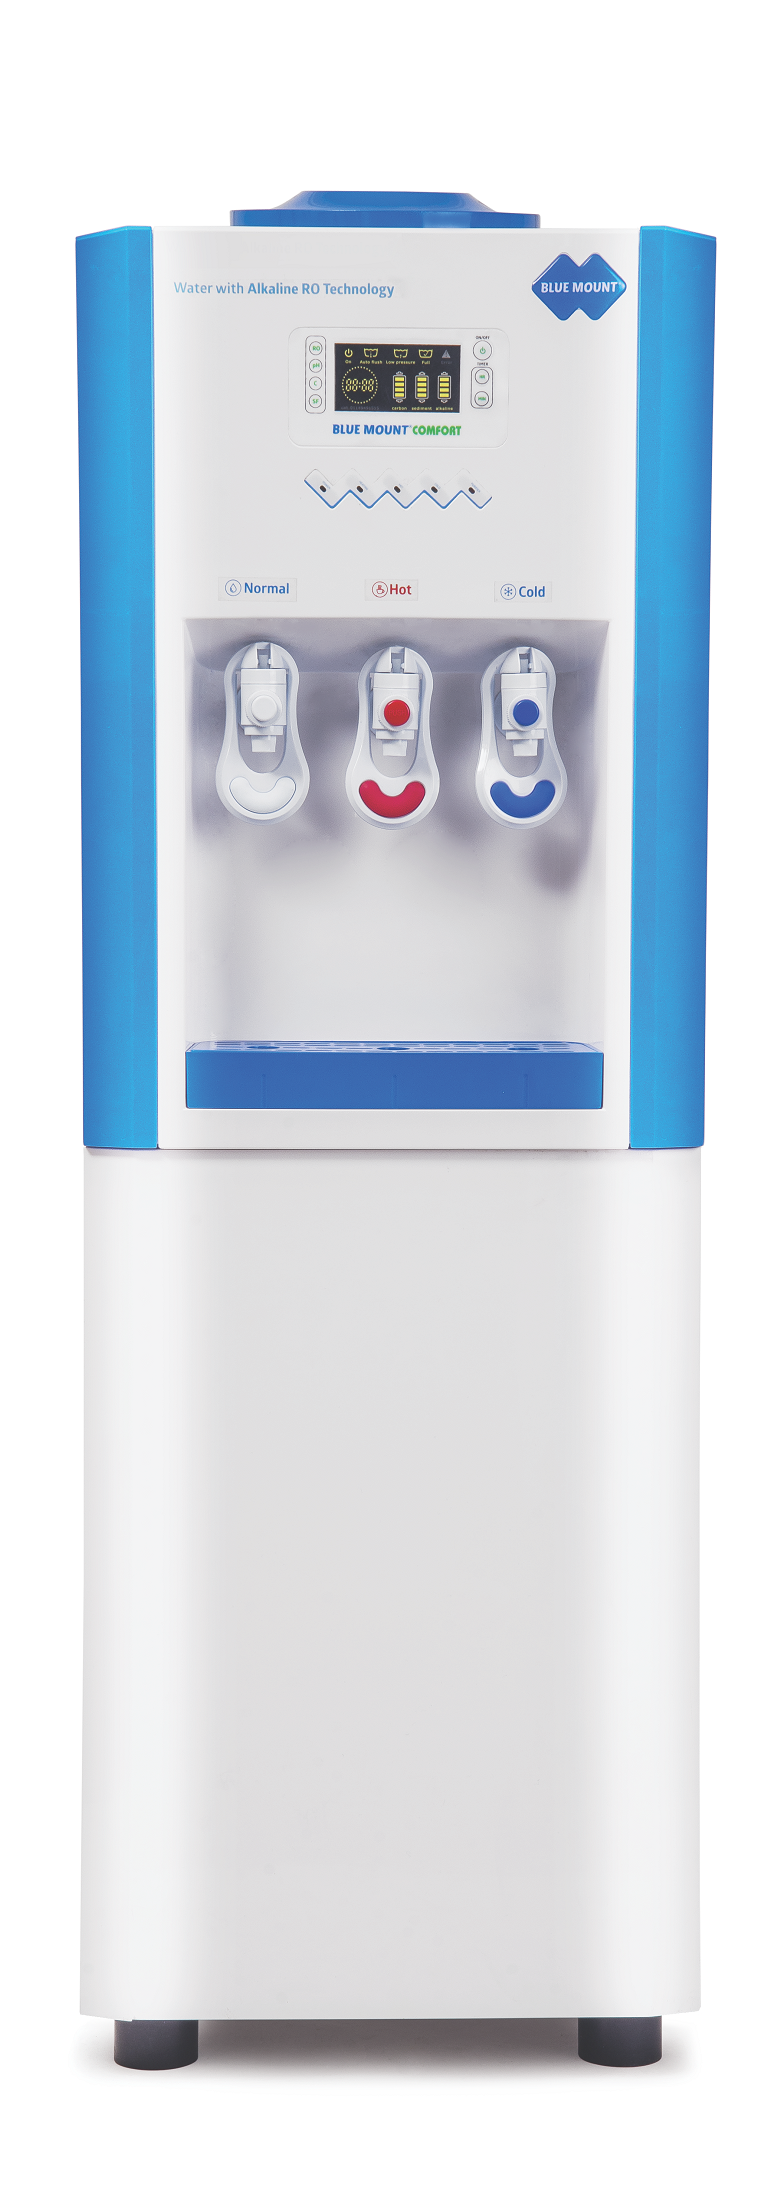 Blue Mount Comfort Alkaline RO + UV + LED with Hot, Cold & Normal Water Purifier